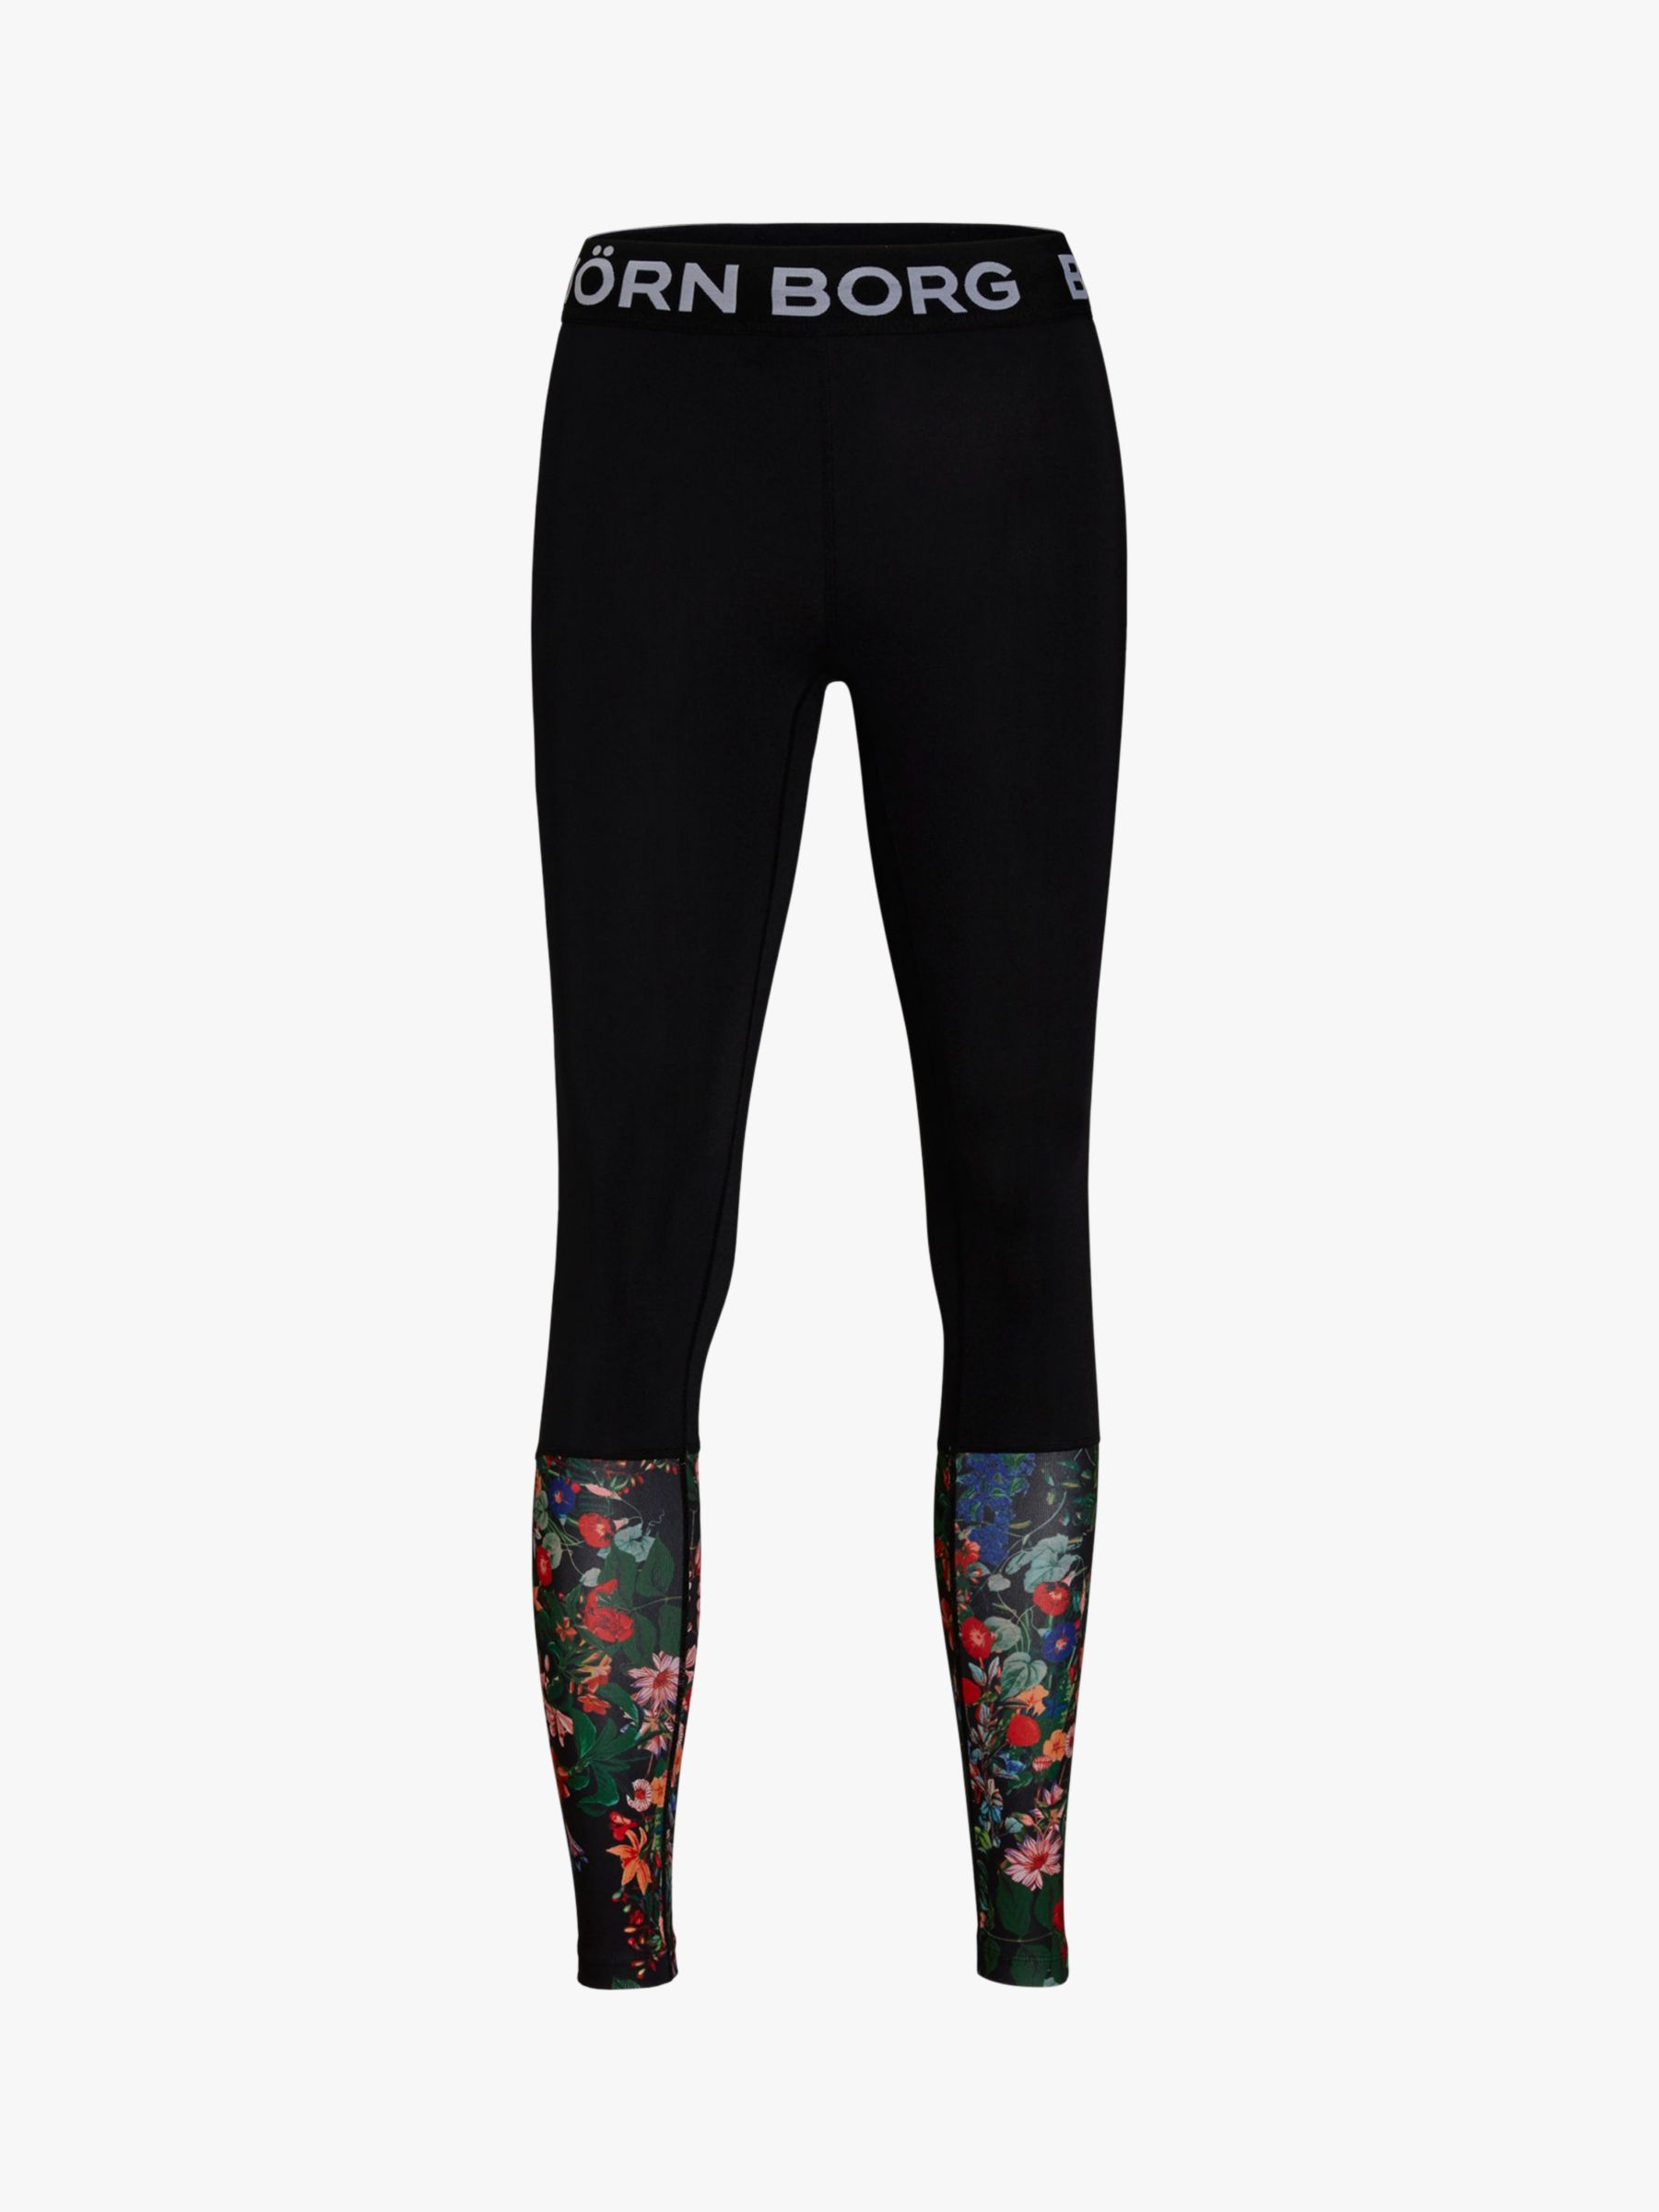 ae8c8dec3e1 Björn Borg Connie Floral Training Tights, Black at John Lewis & Partners